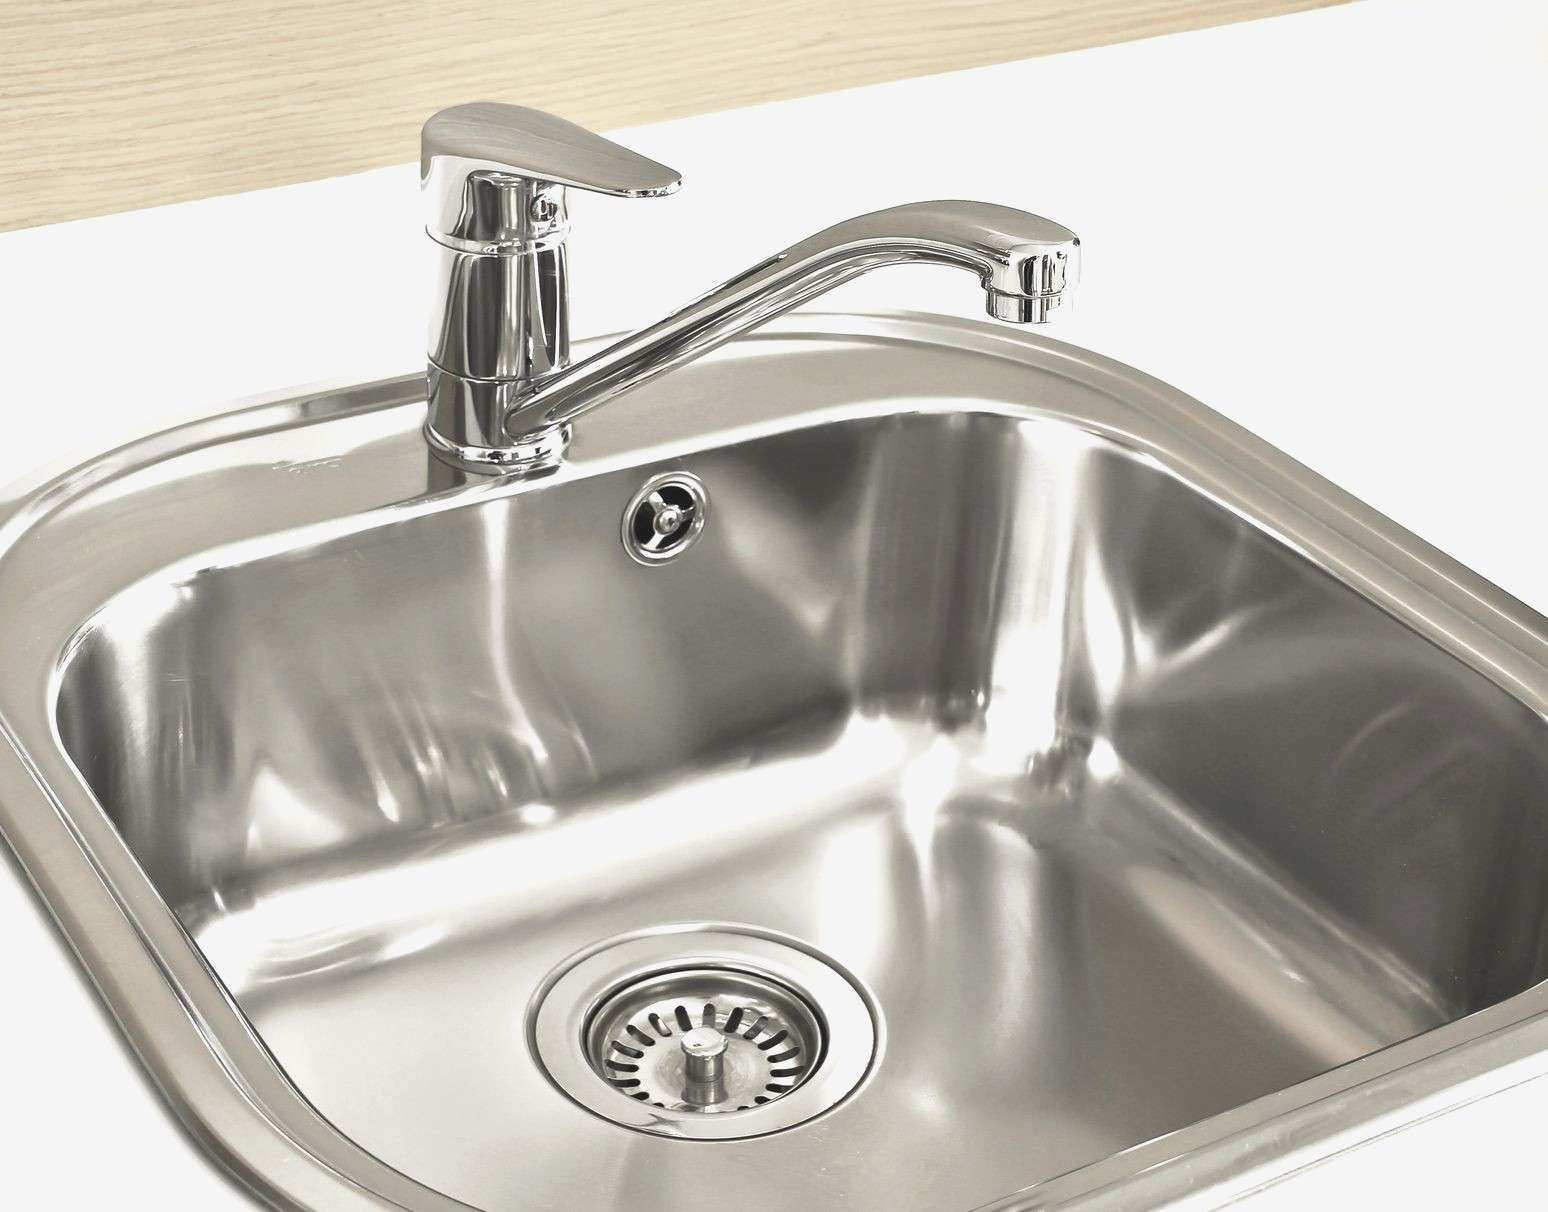 Best ideas about Bathroom Sink Smells . Save or Pin Fresh Kitchen Sink Smells Like Rotten Eggs Unique Bathroom Now.